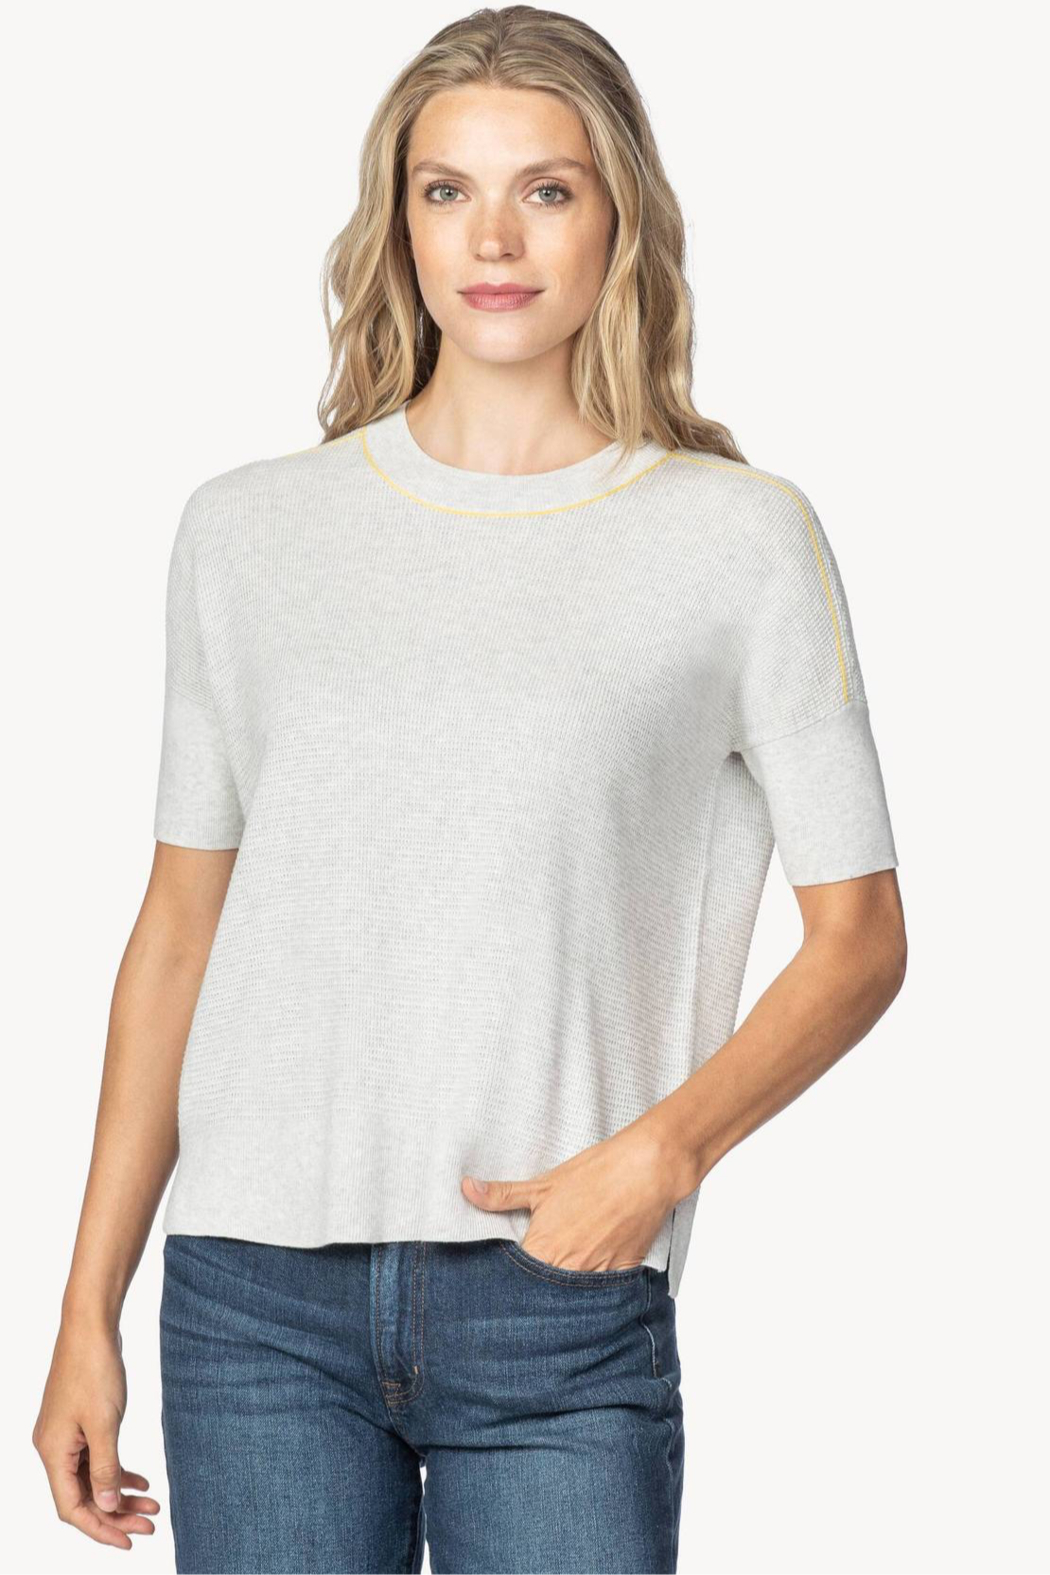 Lilla P PA1382 - Easy Sweatshirt Sweater - Front Cropped Image